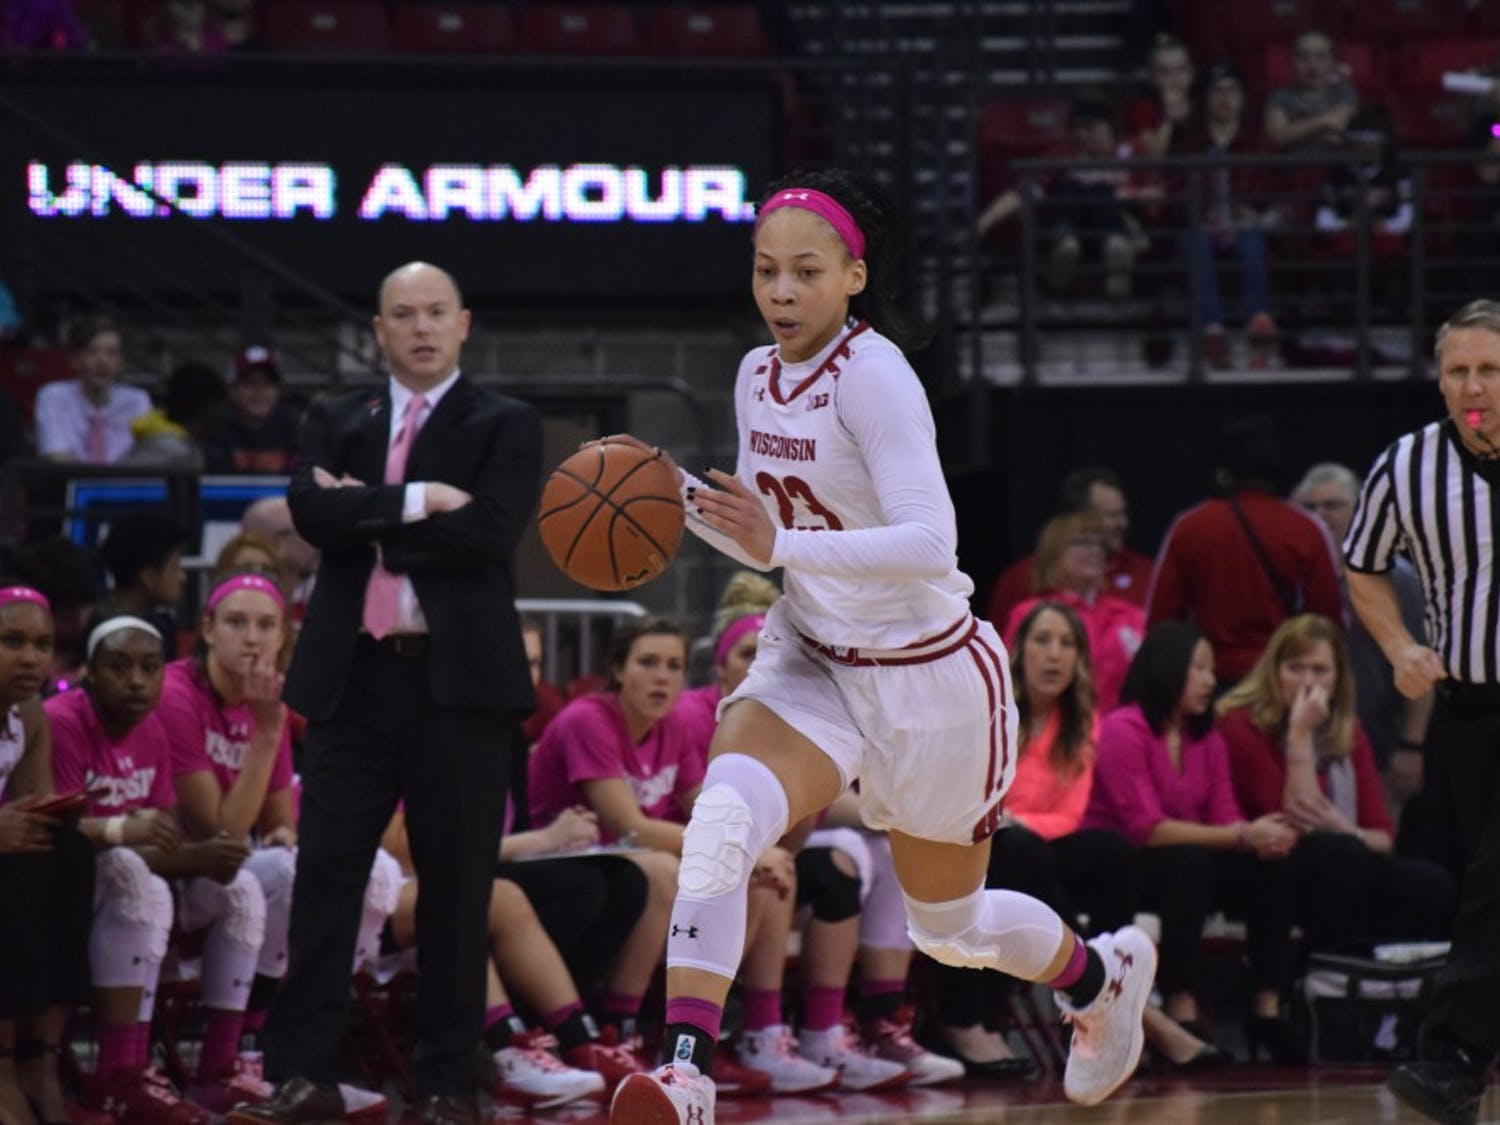 Cayla McMorris and the Badgers are looking to win back-to-back conference games for the first time this season.